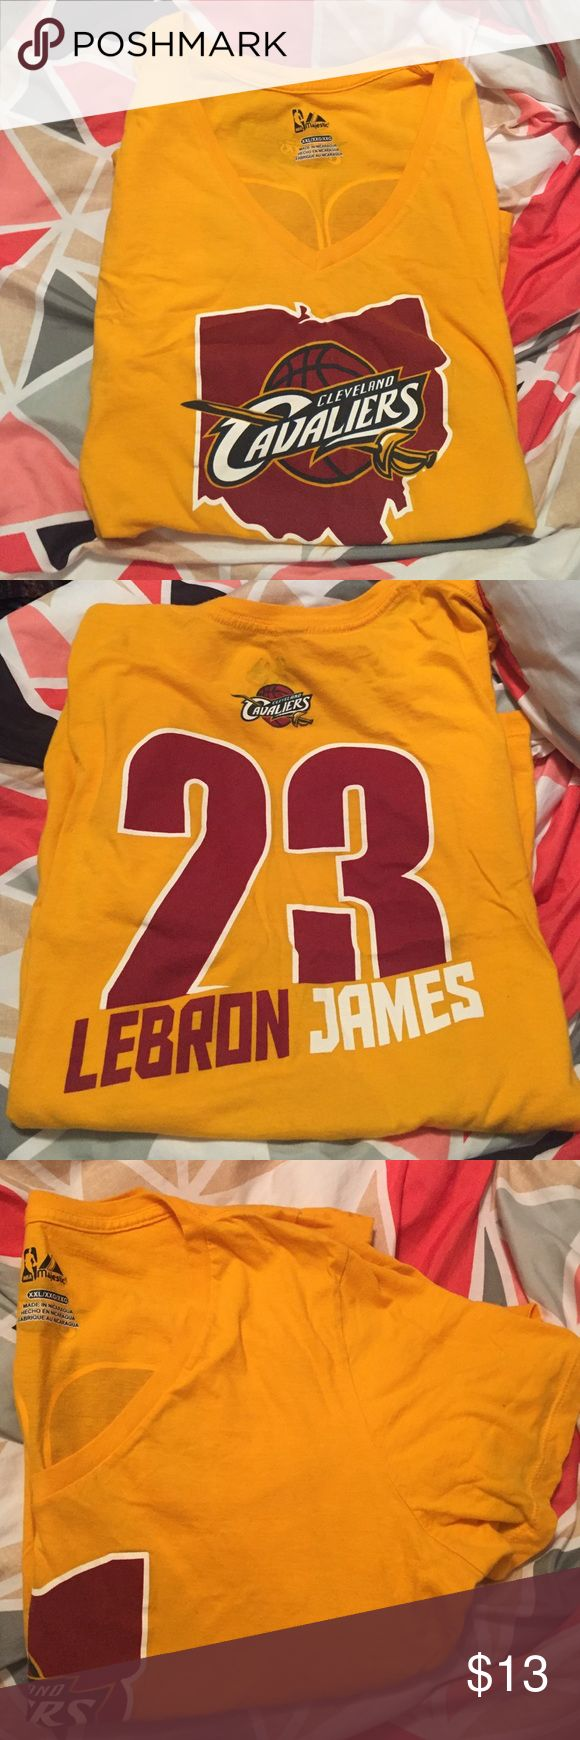 LeBron James Cleveland Cavaliers Tee Worn ONE time!! Perfect condition. Features LeBron James number on the back, Ohio on the front and short sleeves. Fits more like a large or maybe XL. Majestic Tops Tees - Short Sleeve